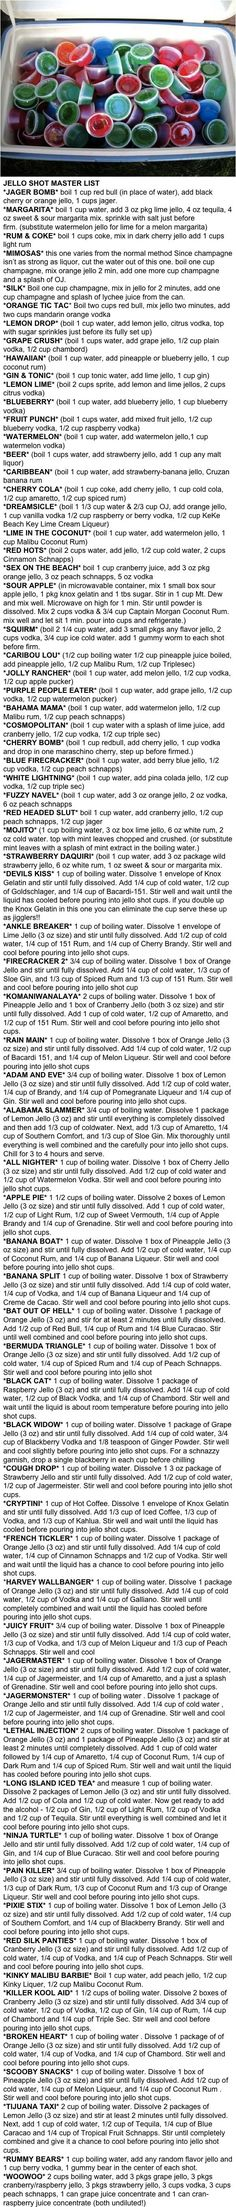 Master list of 70 jello shots. Summer is coming. - Imgur